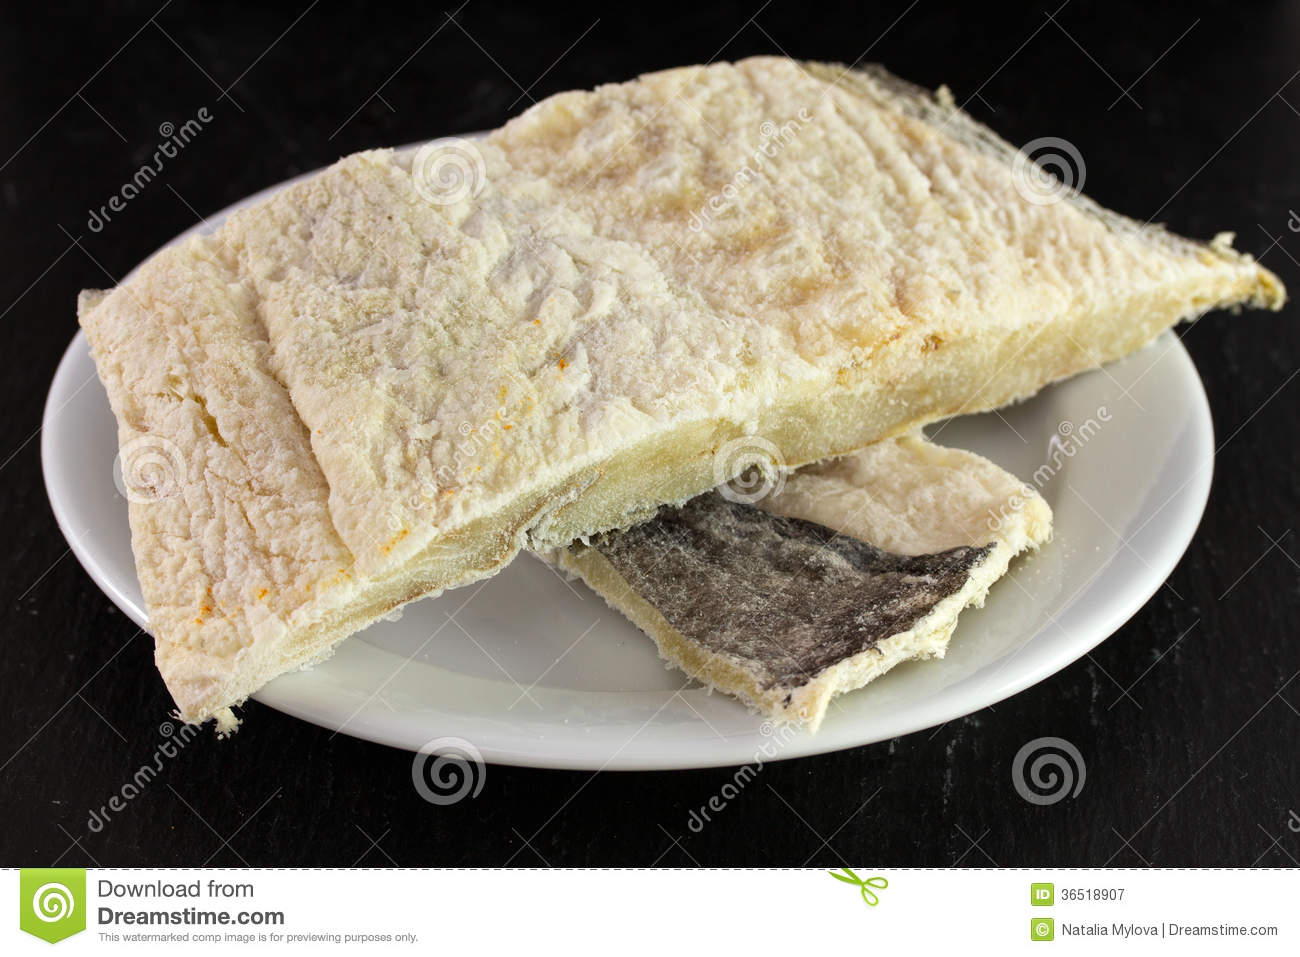 Salted codfish royalty free stock photography image for Where to buy salted cod fish